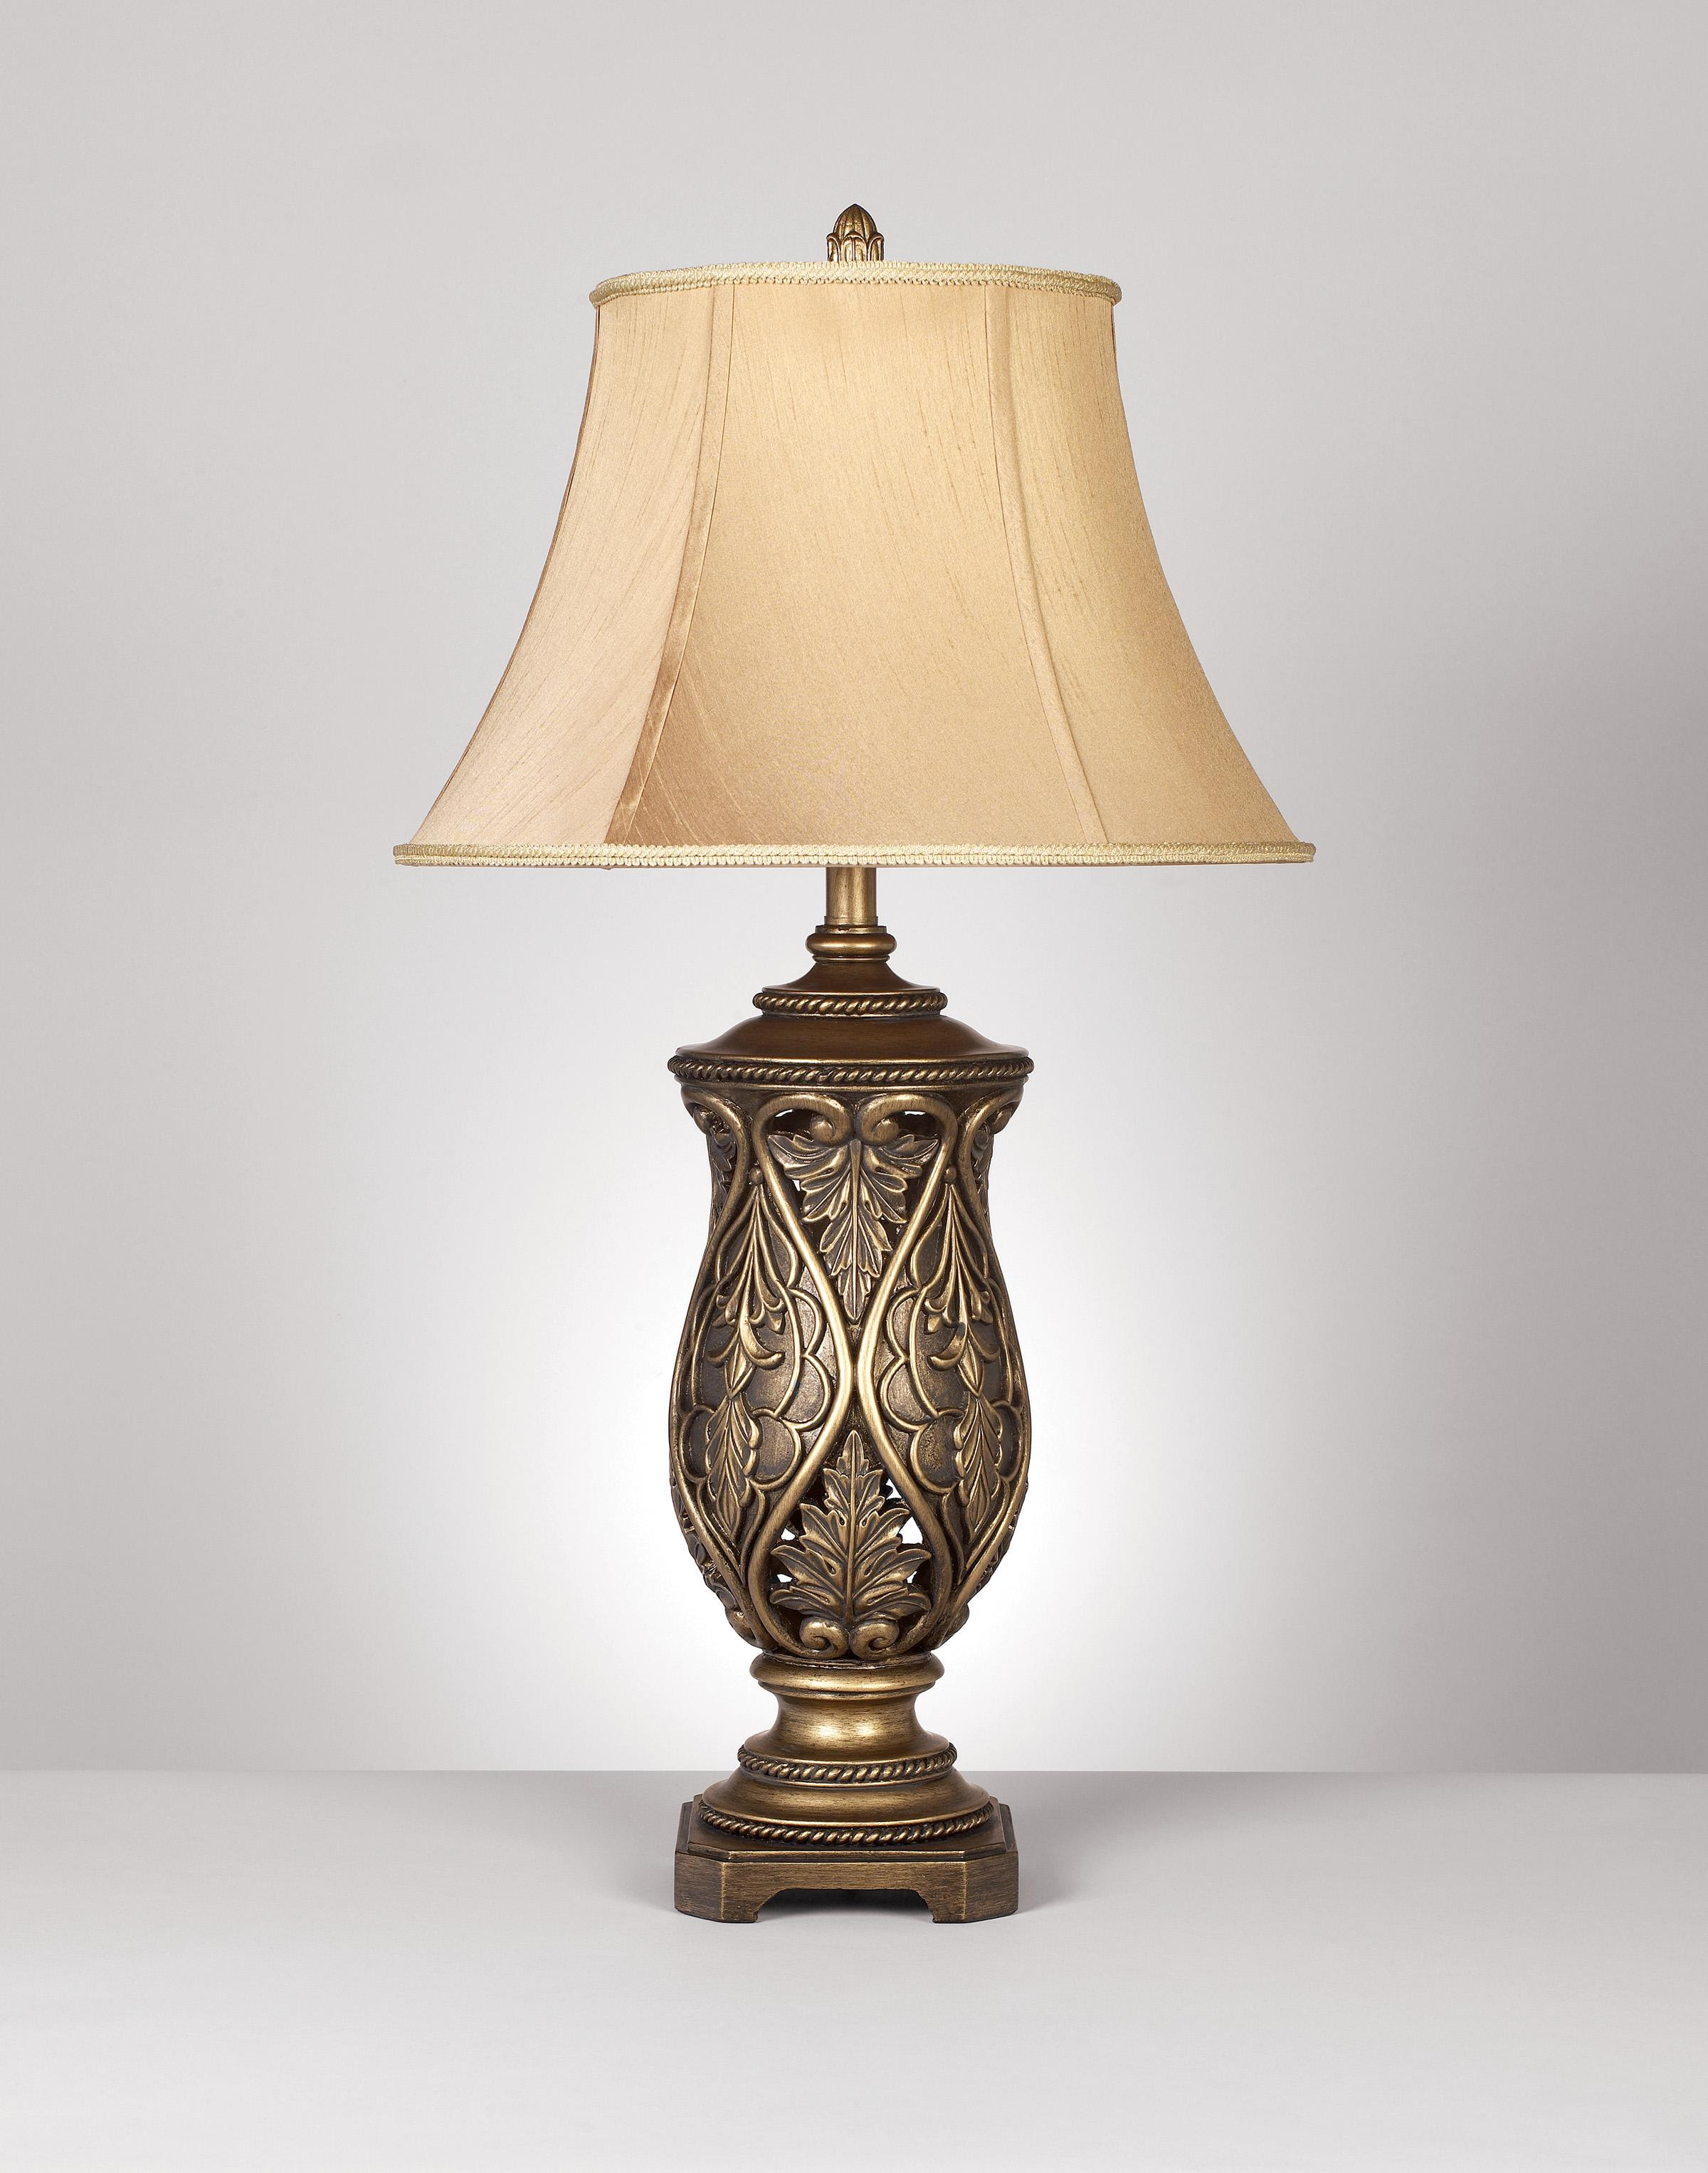 Signature Design by Ashley Lamps - Traditional Classics Katarina pair of lamps - Item Number: L511934